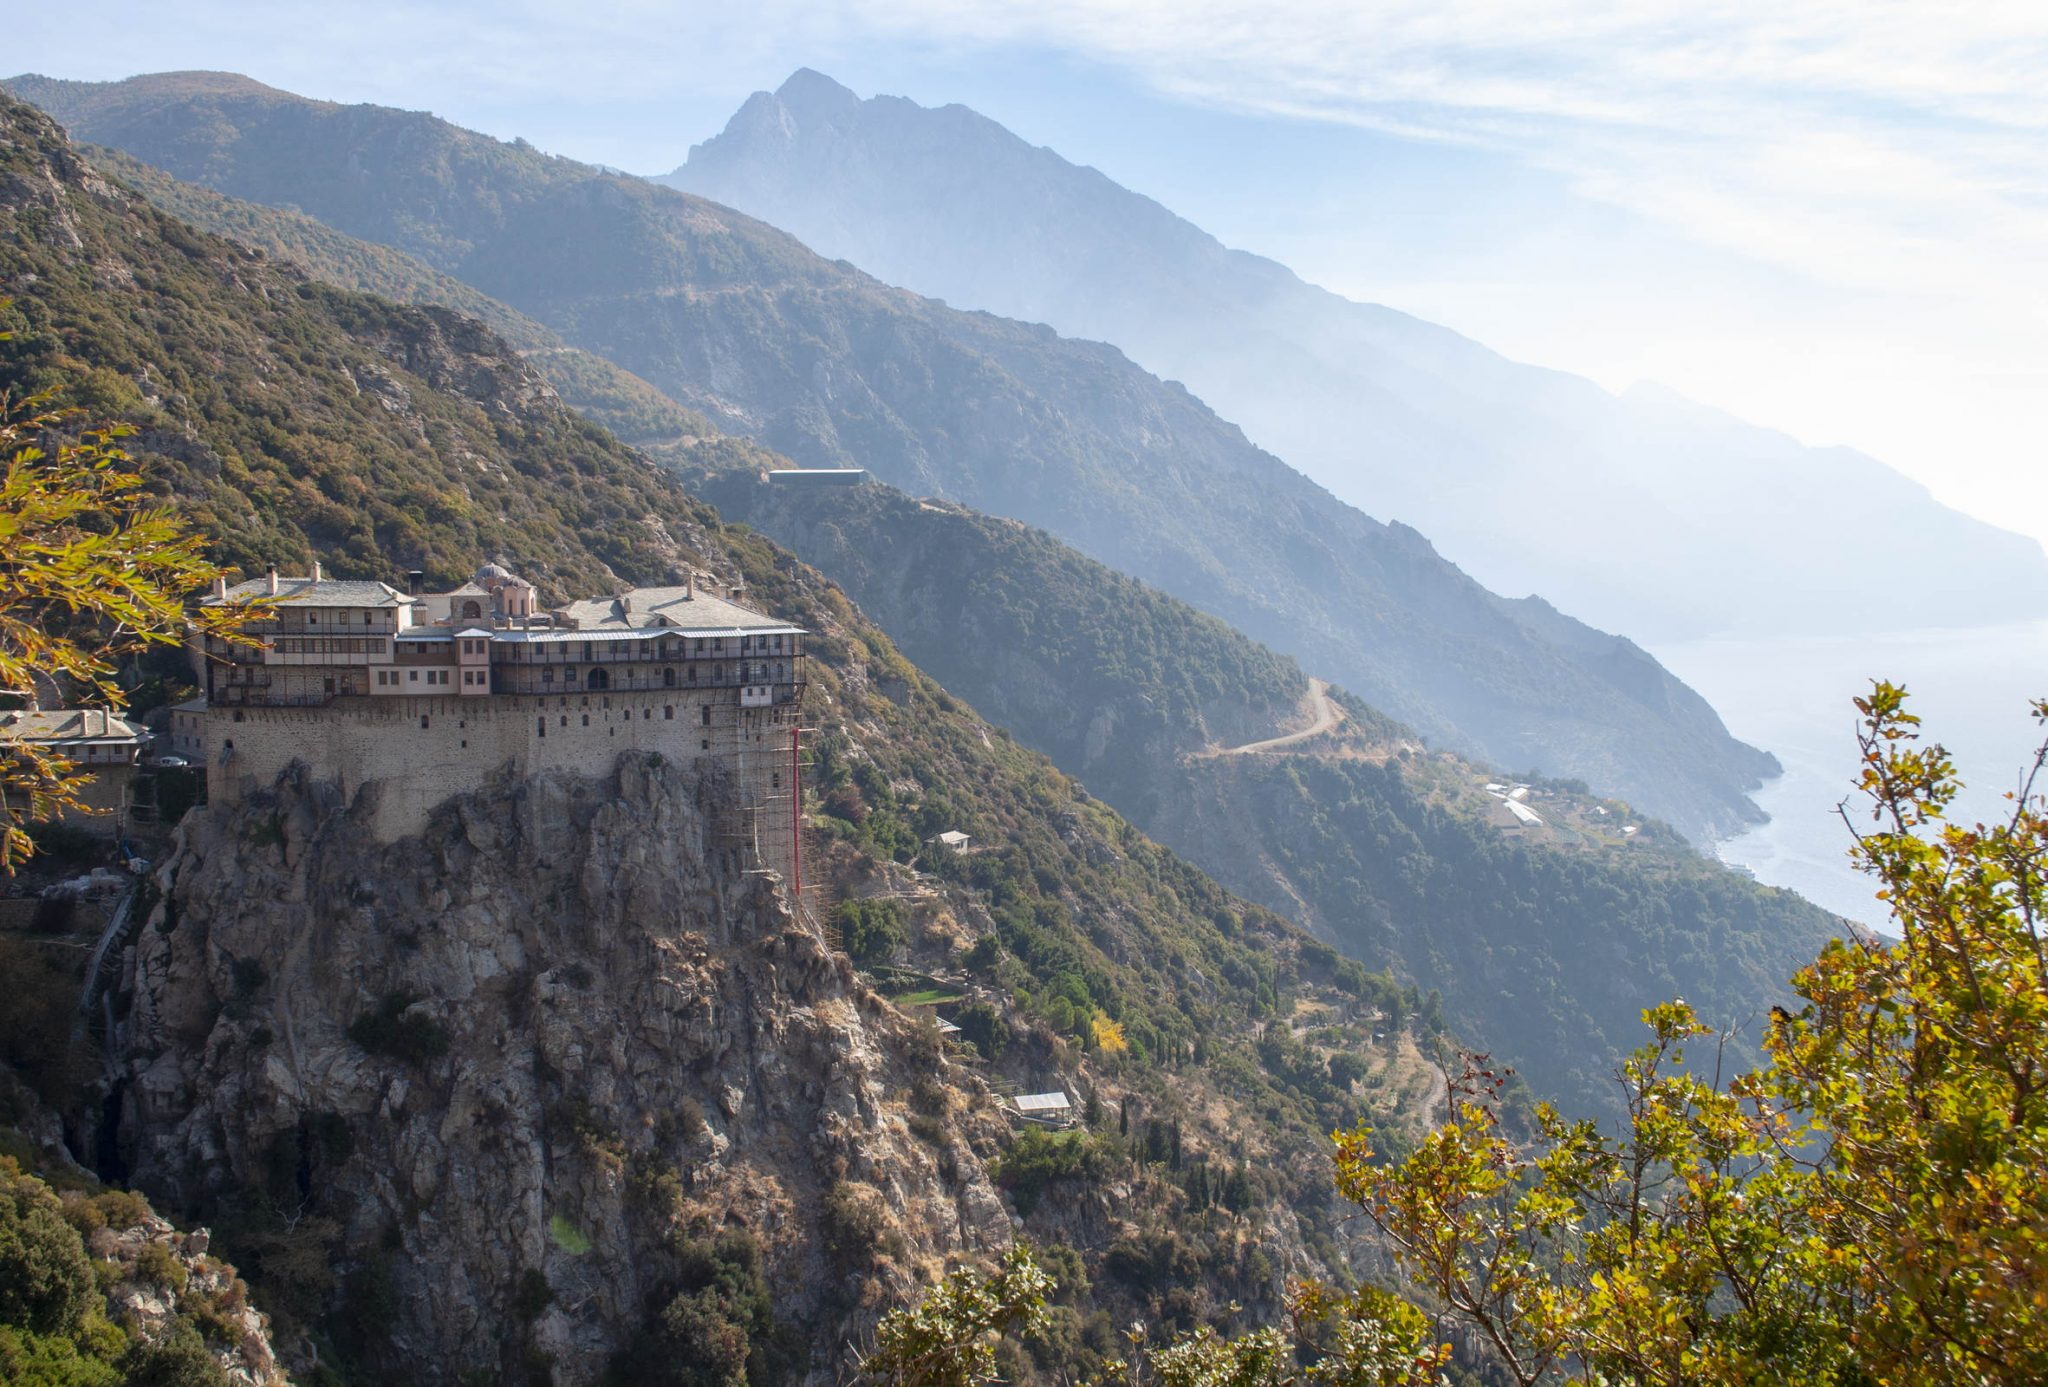 The Holy Monastery of Simonopetra, Mount Athos